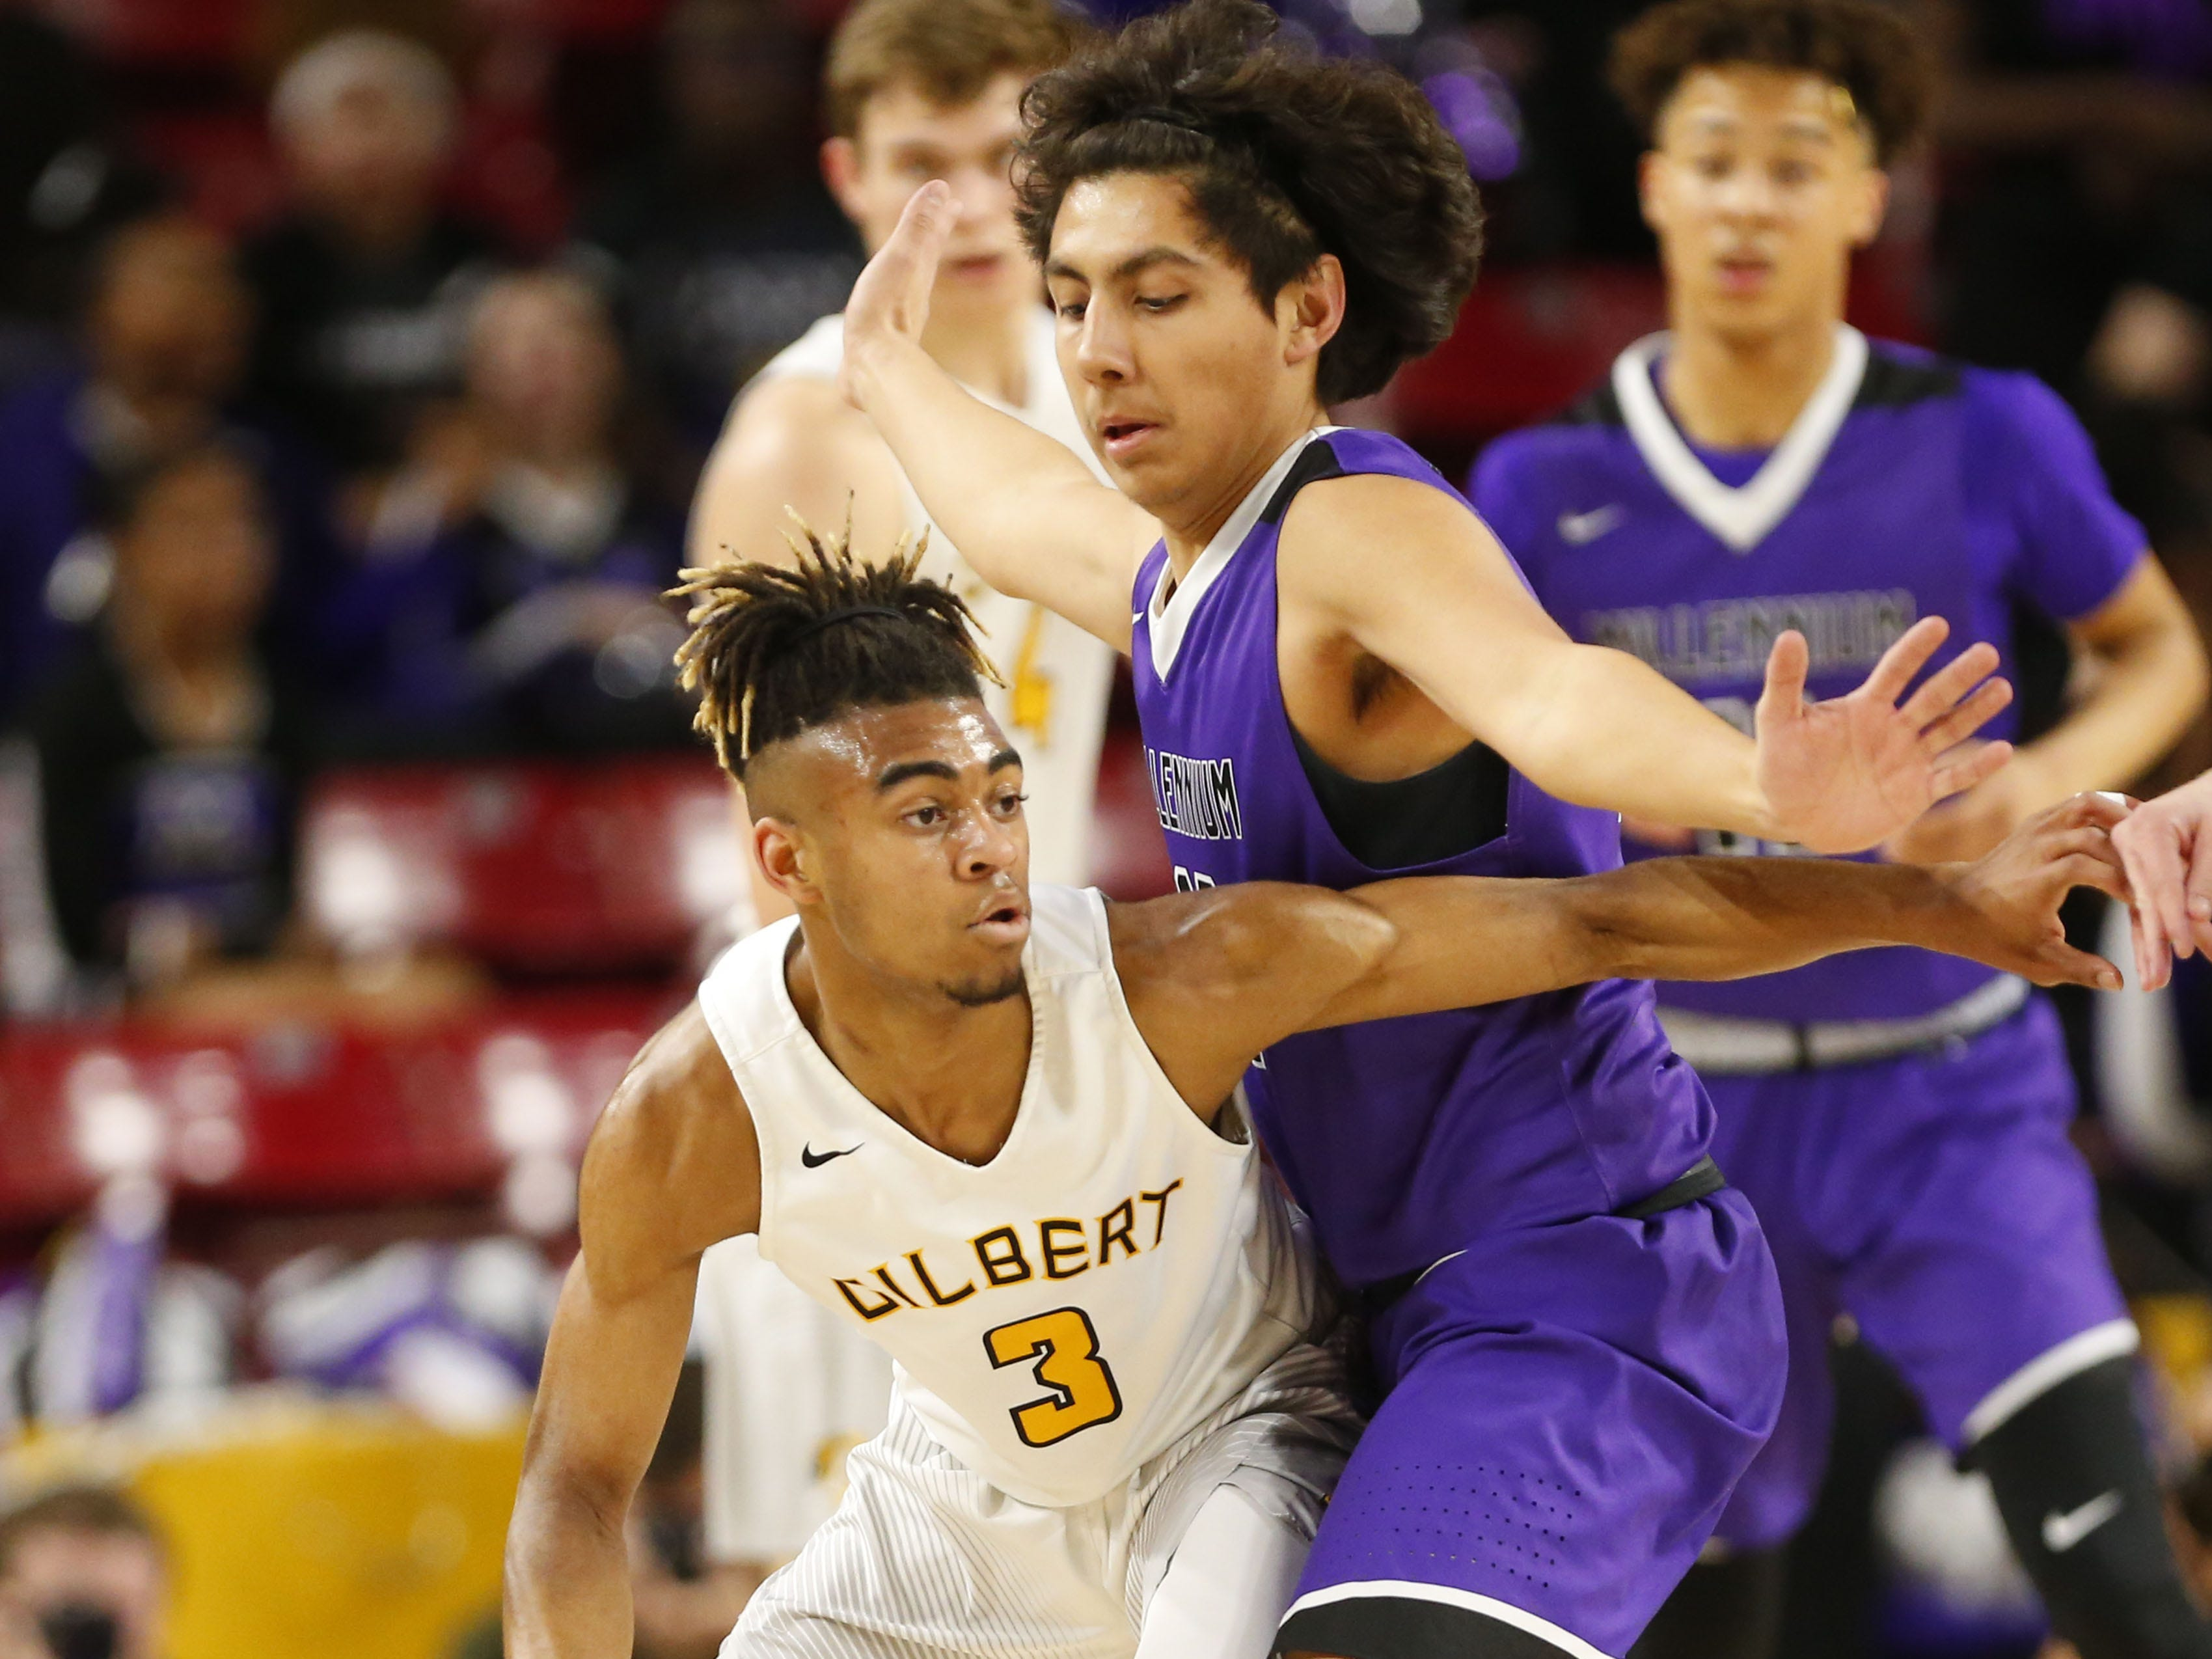 Gilbert's Doc Self (3) is pressured by Millennium's Jose Cortes (13) during the Boys State 5A Championship game in Tempe, Ariz. Feb. 25, 2019.